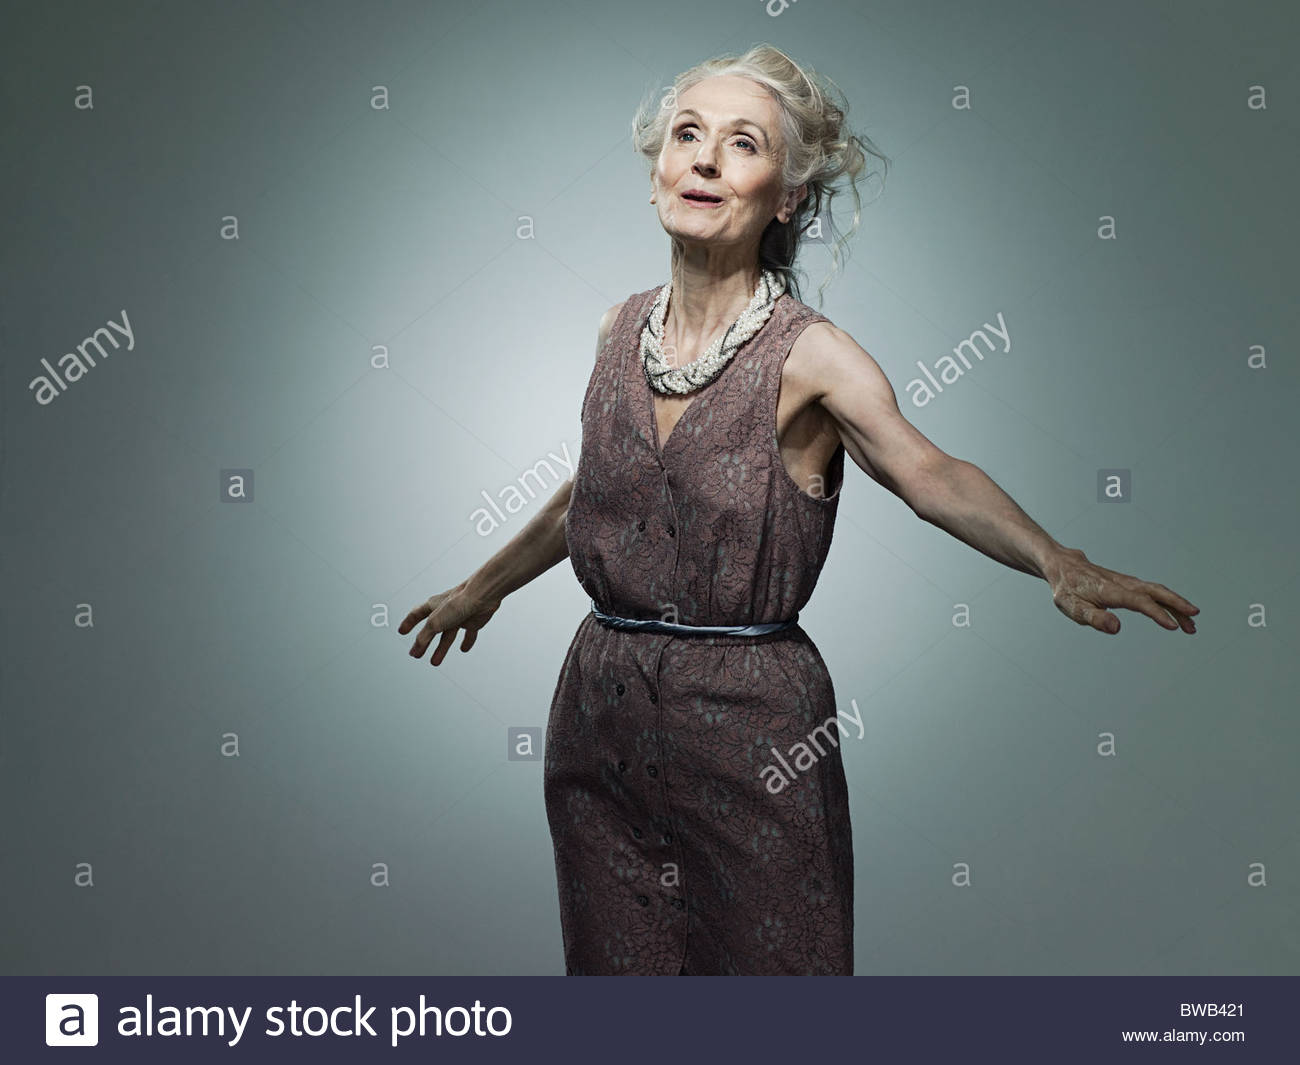 Senior woman with arms out, portrait - Stock Image